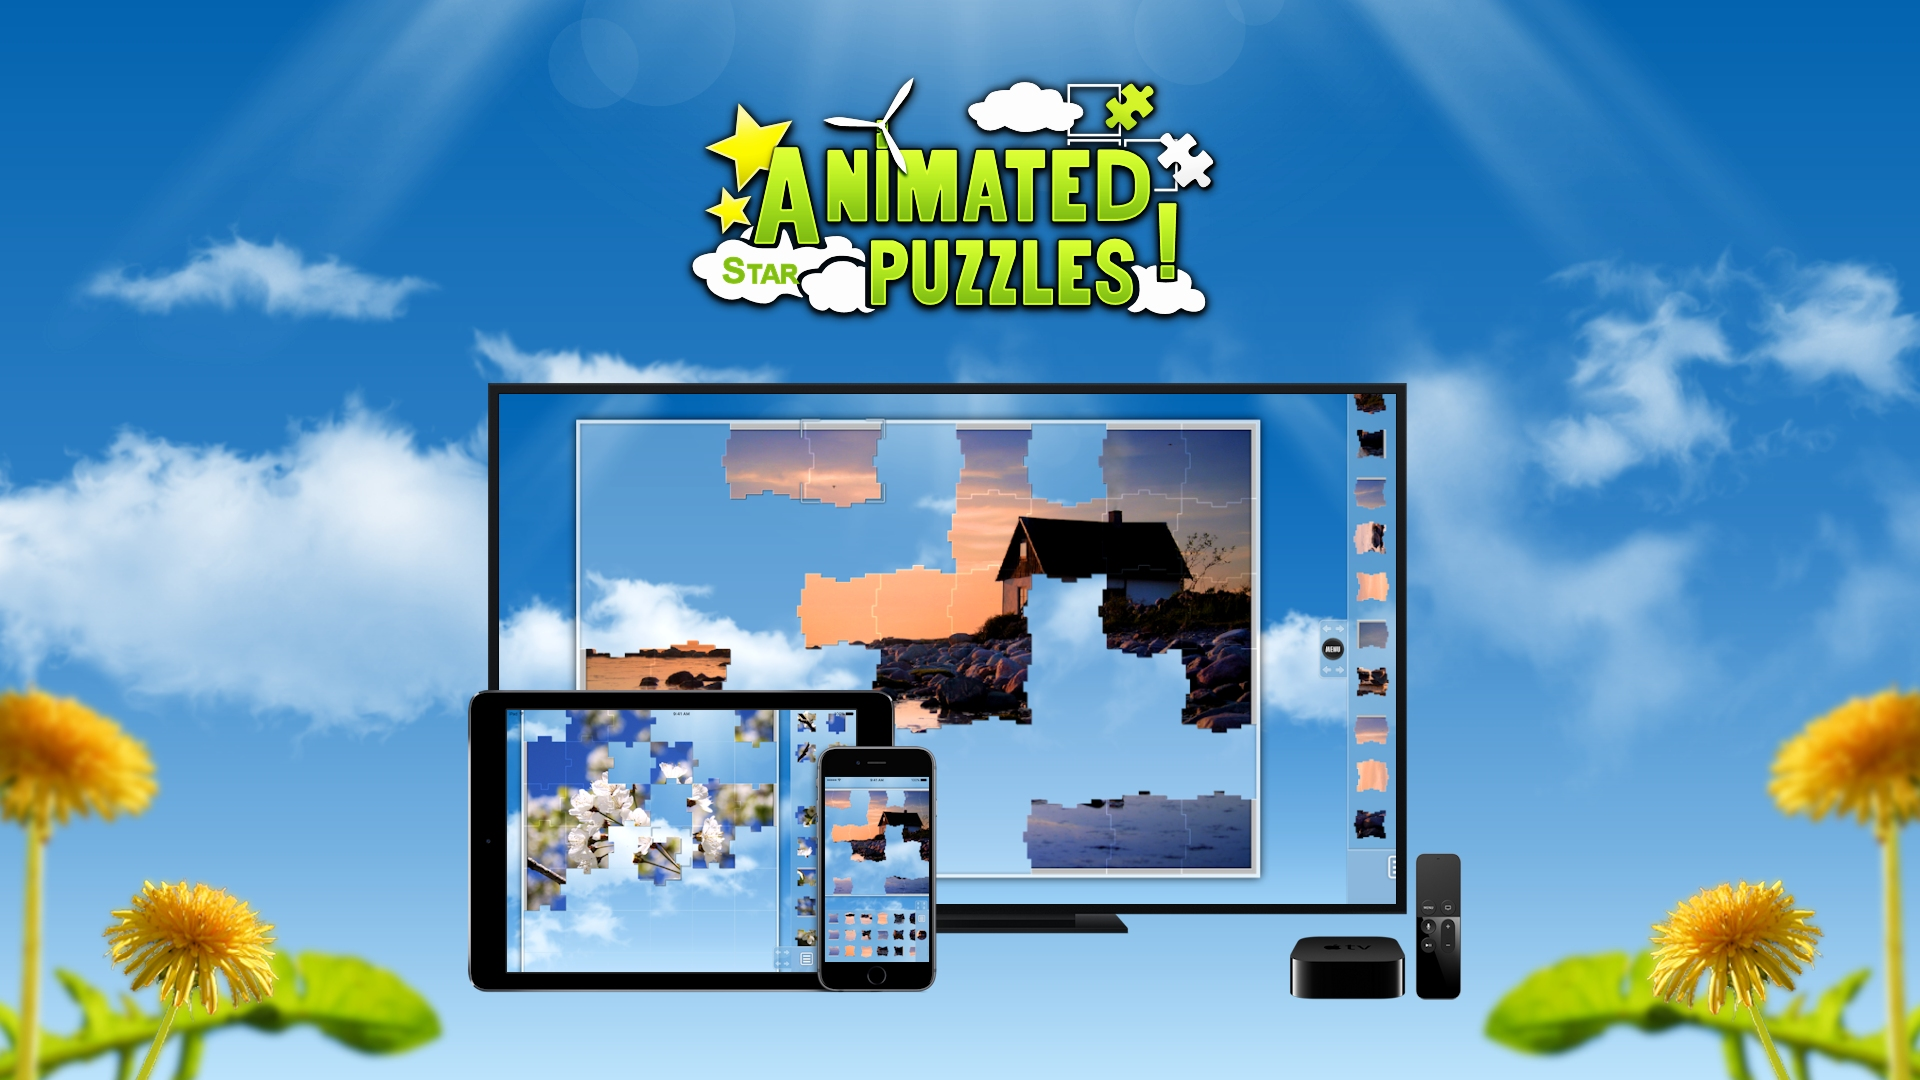 Animated Puzzles for iOS